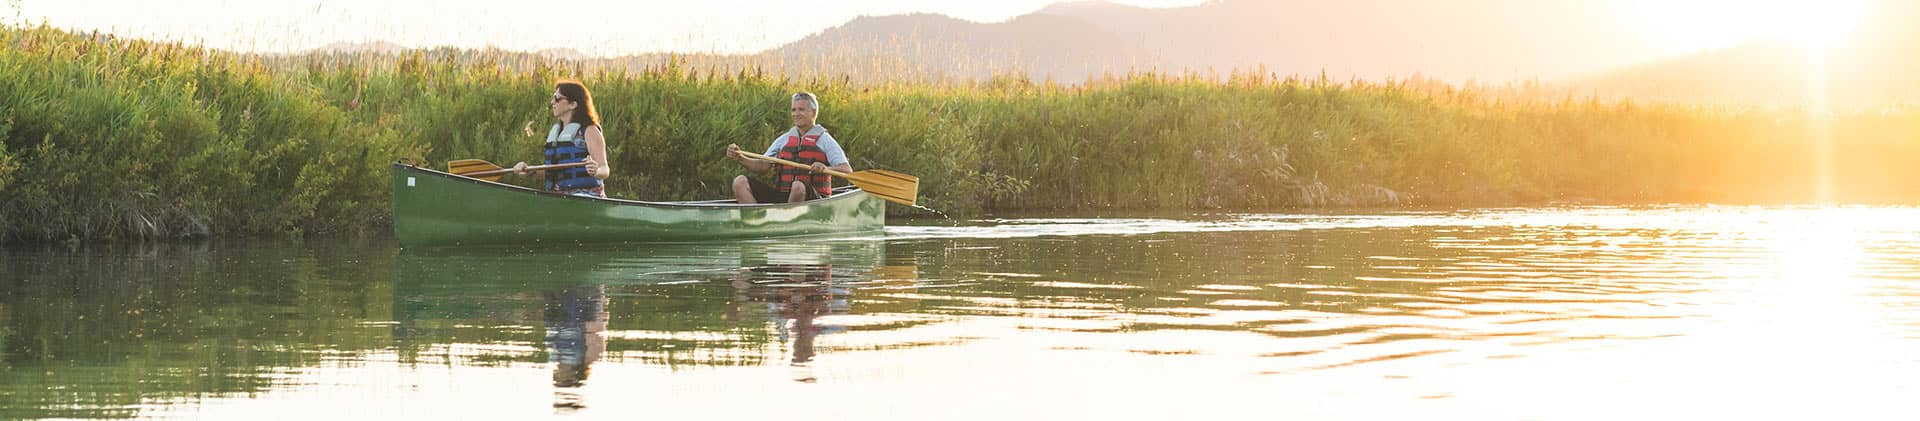 woman and man couple canoeing on lake in mountains talking about new momentum flexible premium deferred annuity and annuities